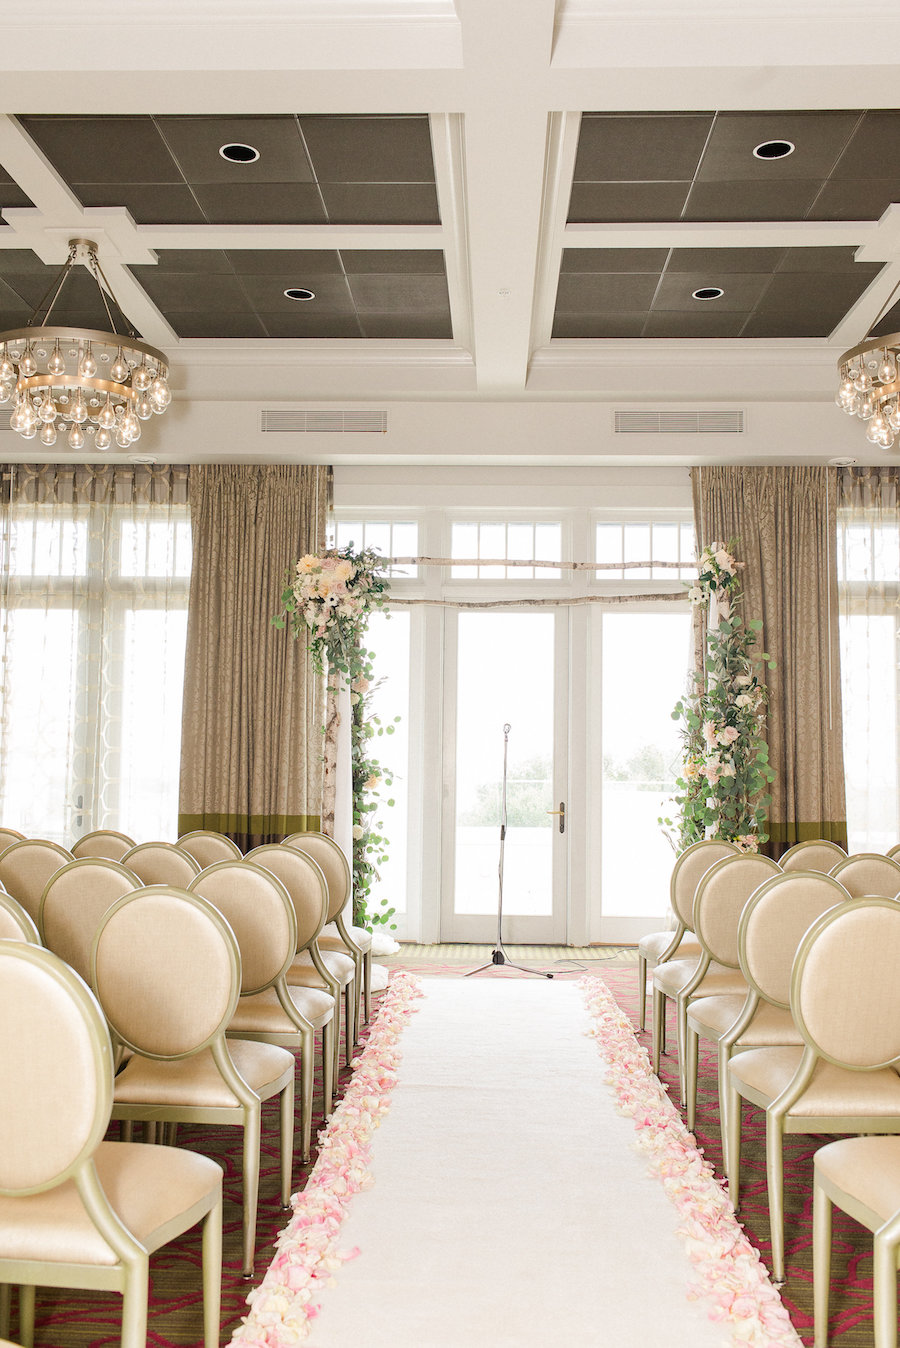 Ivory, Blush and Gold Wedding Ceremony Ideas and Inspiration with Blush Rose Petals and Arch with Ivory and Blush Florals with Gold Banquet Chairs   St. Petersburg Wedding Venue The Birchwood   Tampa Bay Wedding Photographer Ailyn La Torre Photography